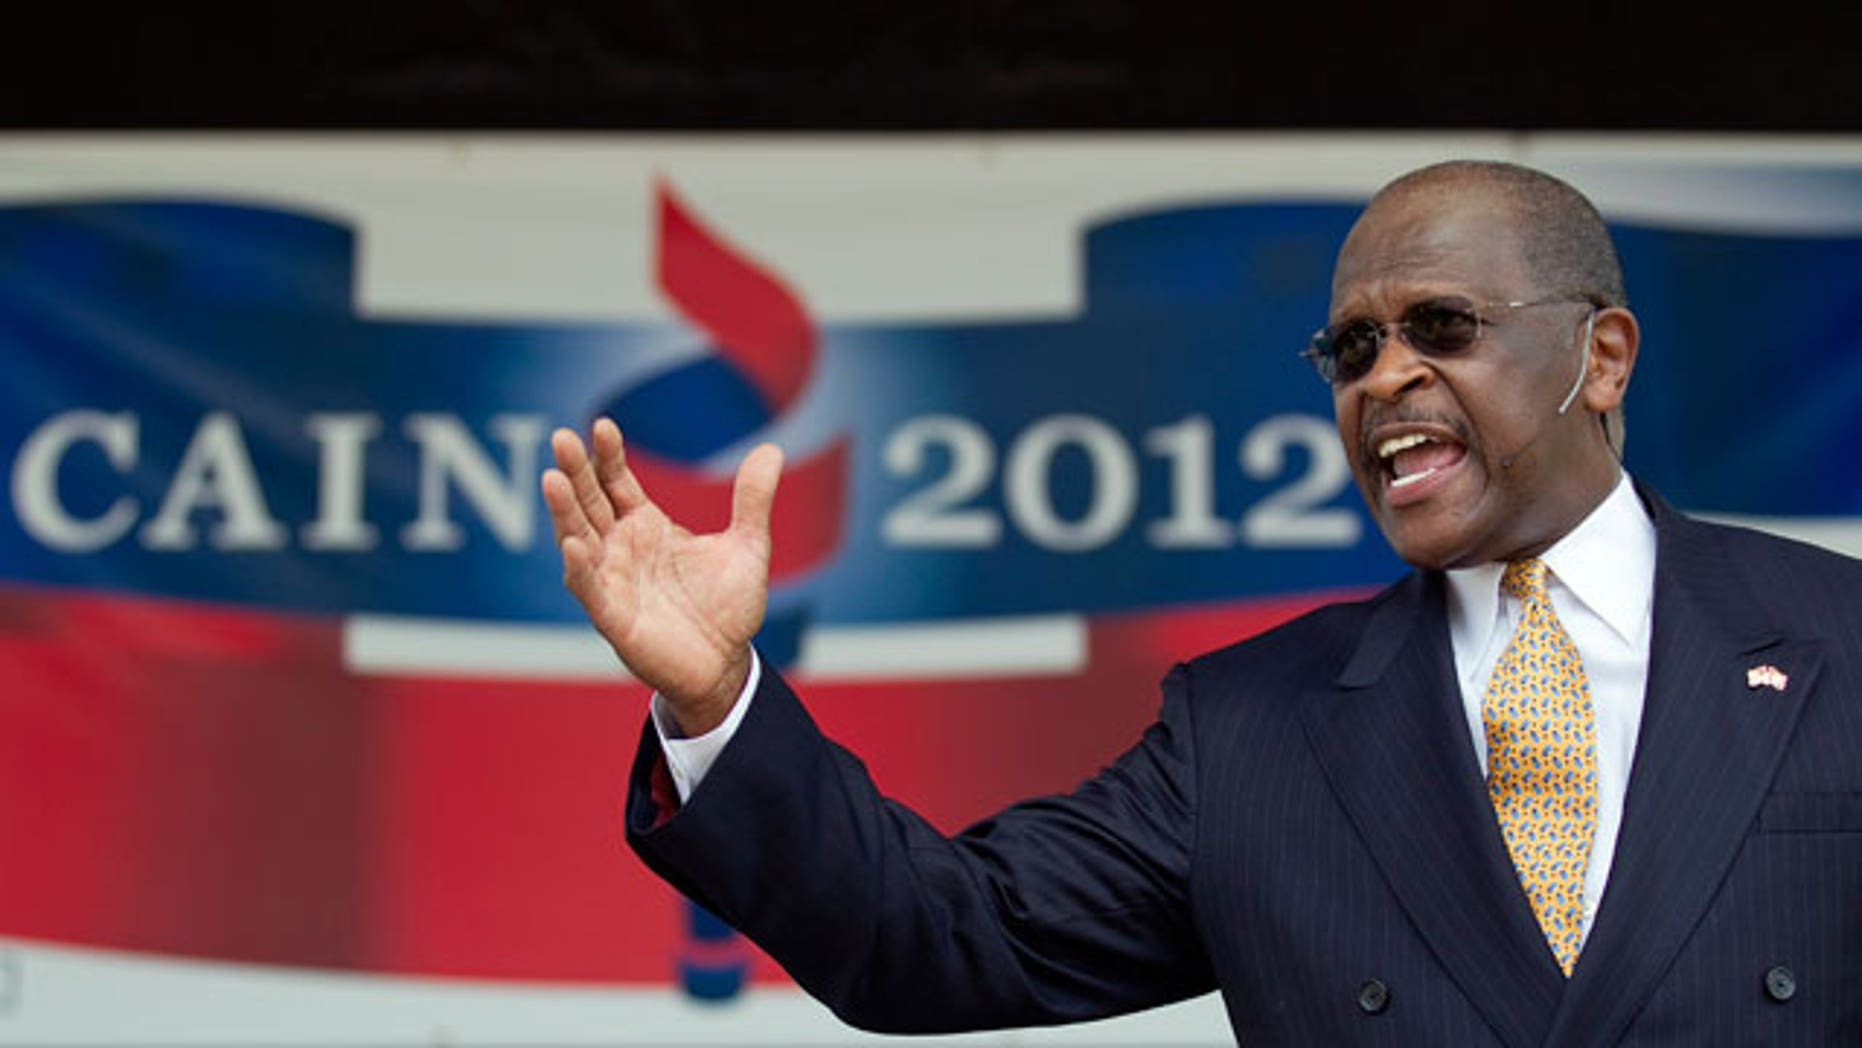 Herman Cain announces his run for Republican candidate for president at a rally Saturday, May 21, 2011 in Atlanta. (AP)